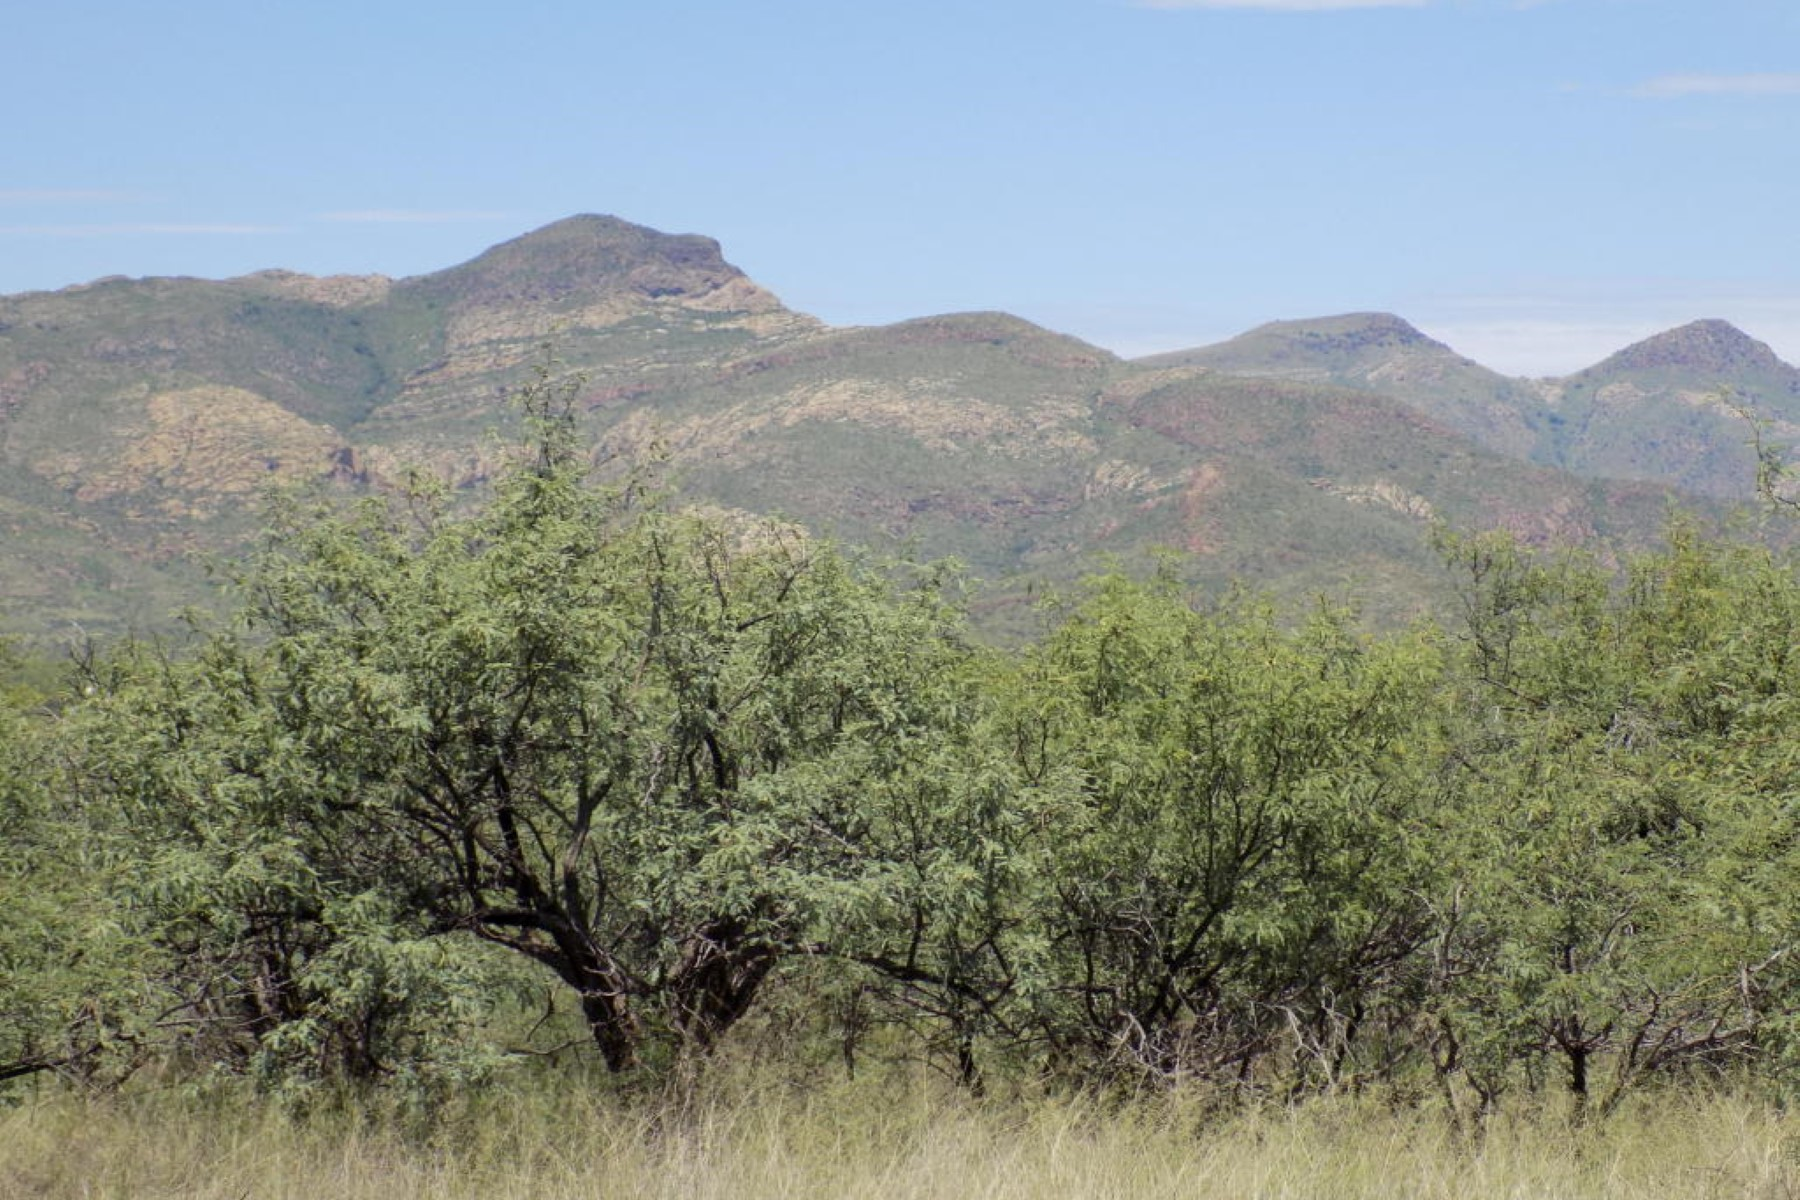 Terreno por un Venta en Wonderful 84.04 acre lot. TBD RIO RICO, Rio Rico, Arizona, 85648 Estados Unidos